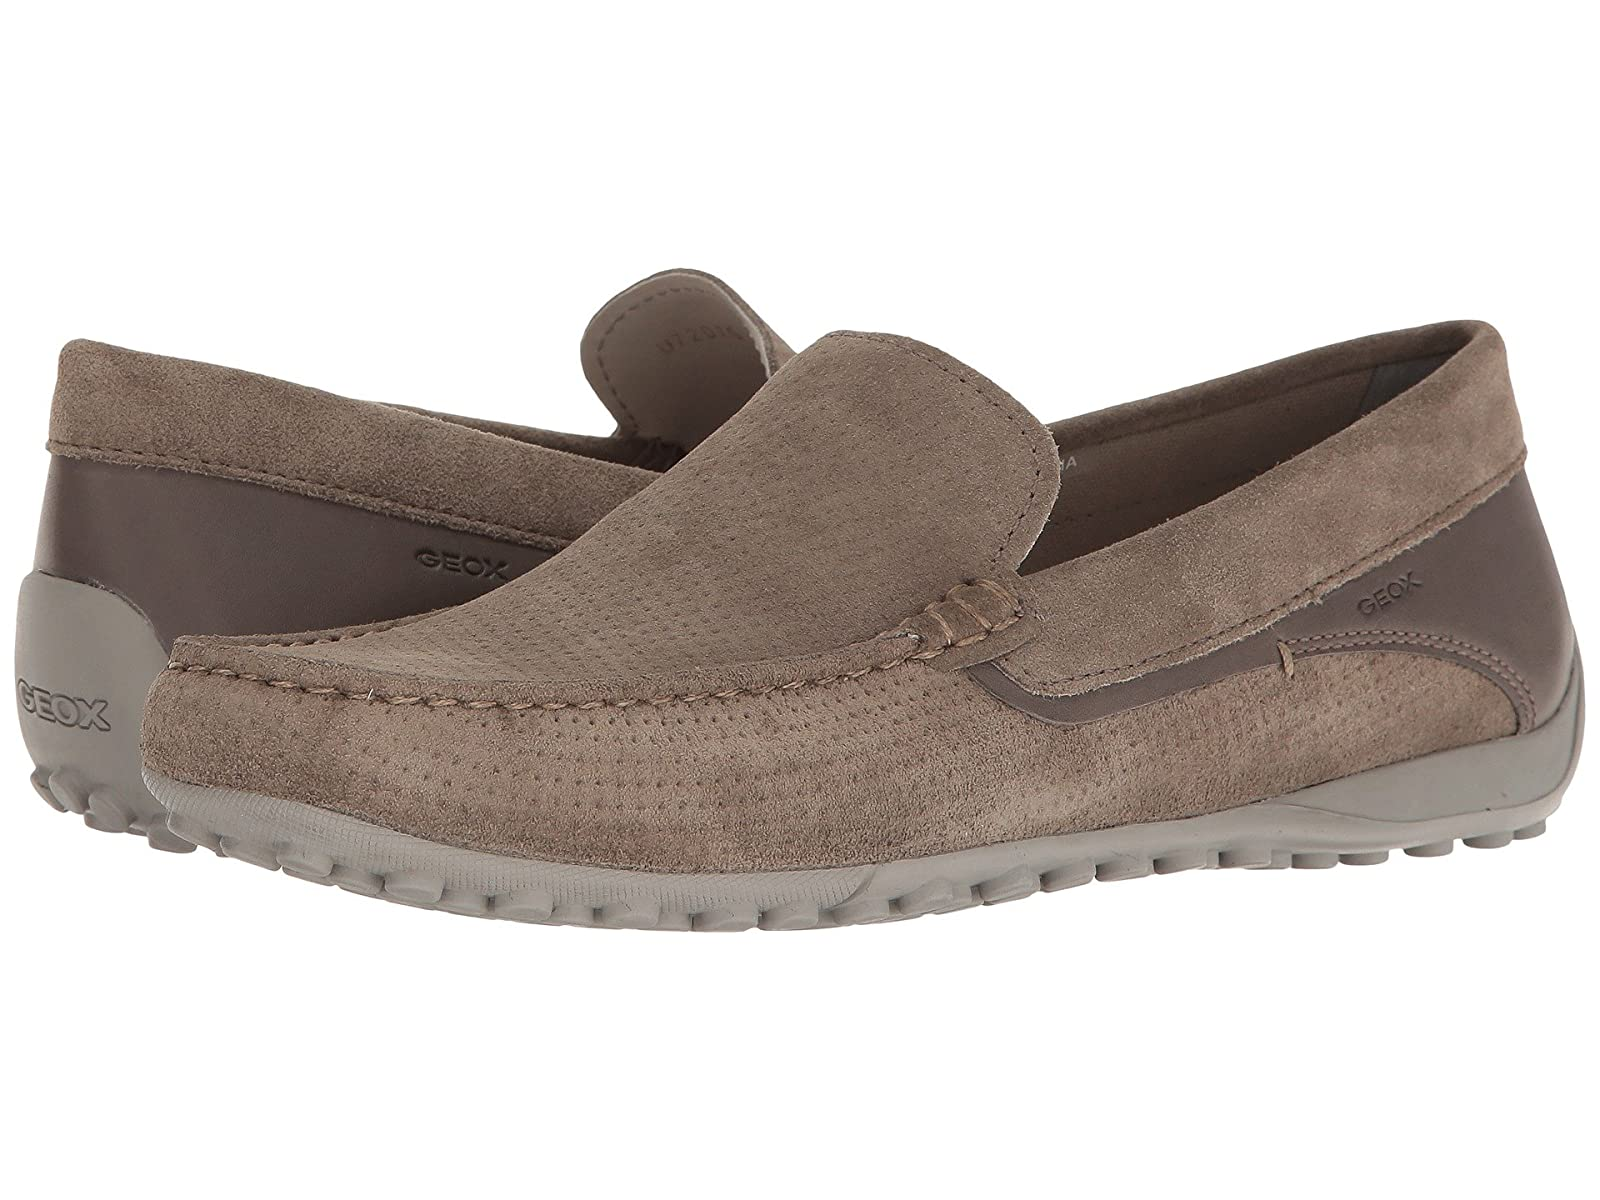 Geox M Snake Moc 15Cheap and distinctive eye-catching shoes